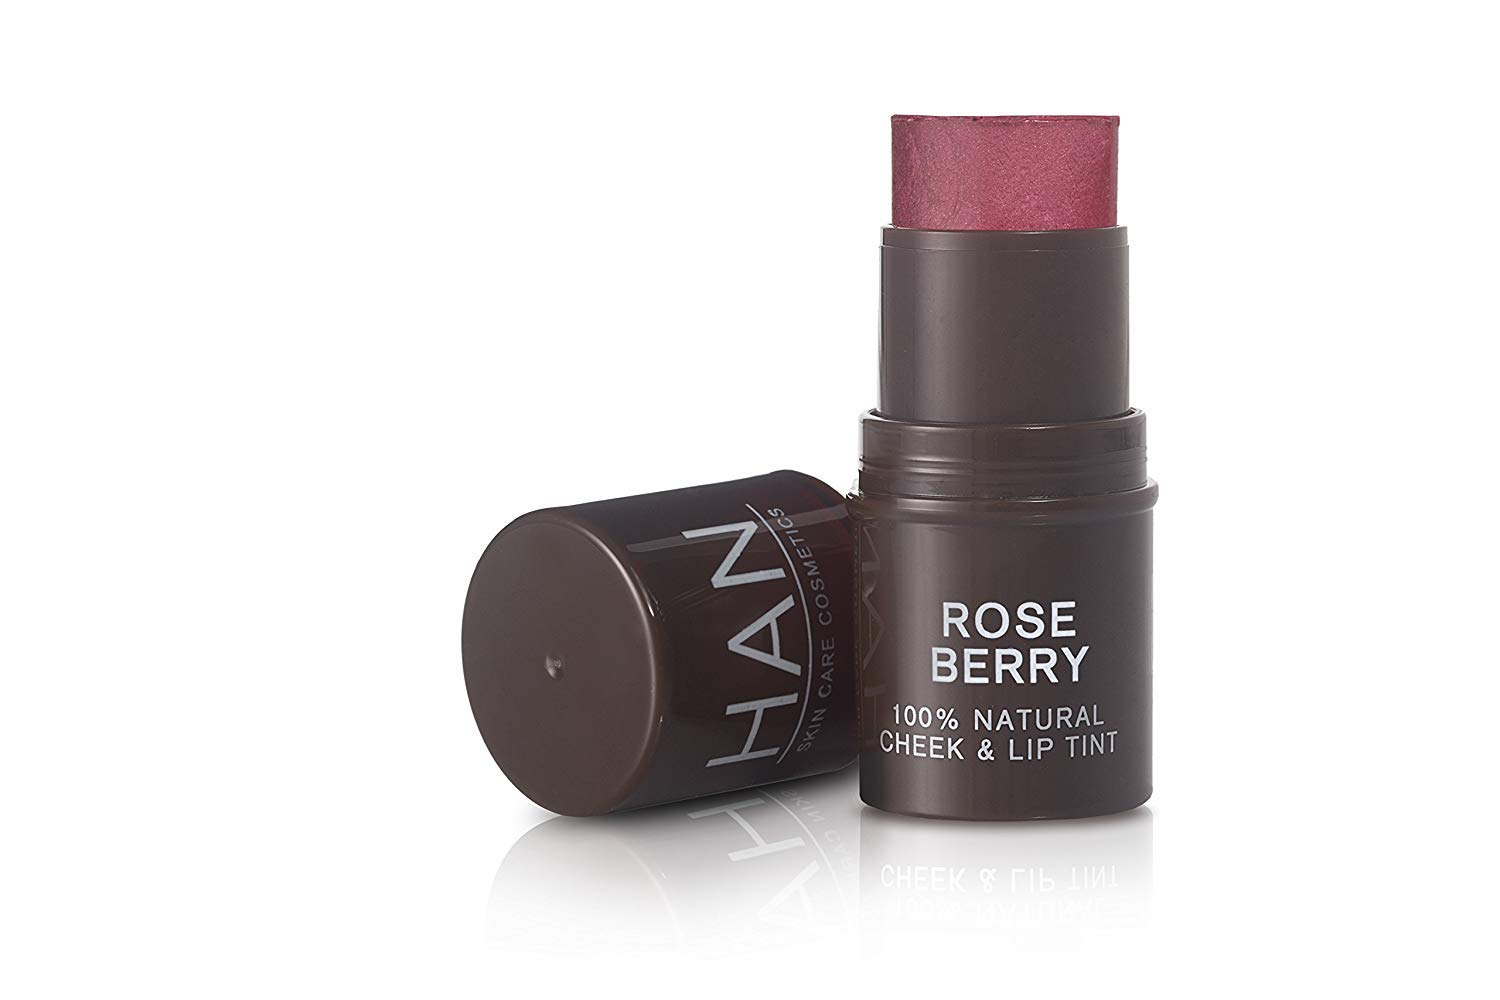 HAN Skincare Cosmetics All Natural Cheek and Lip Tint, Rose Berry